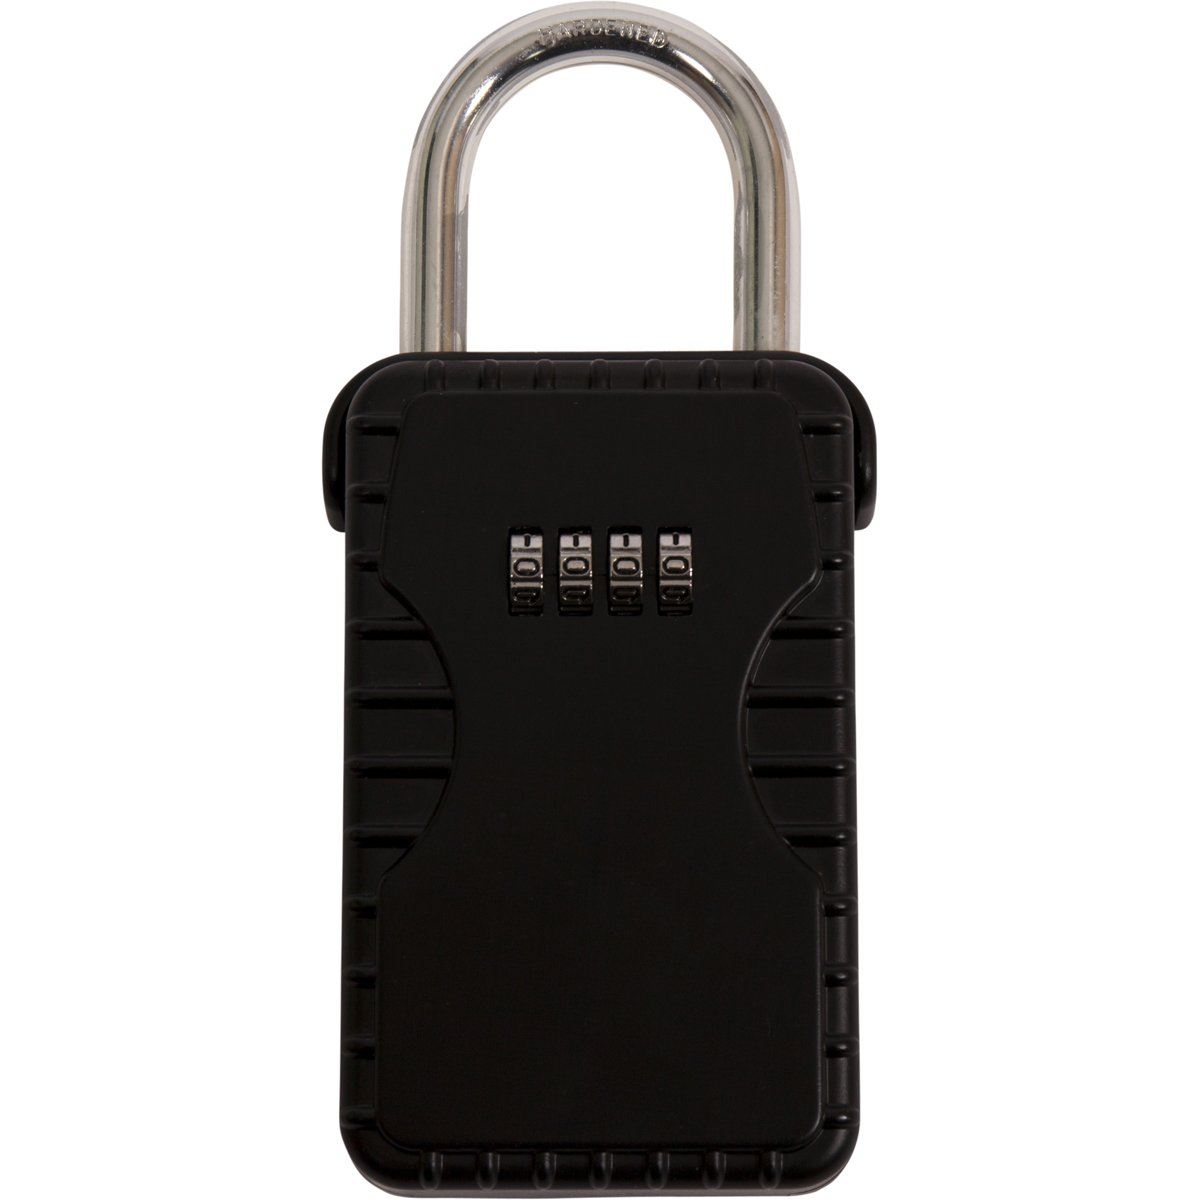 Duralock 4 Digit Combination Key Safe with Hardened Metal Steel Shackle Lock Home Security Box Outside Outdoor High Secure Keys Storage